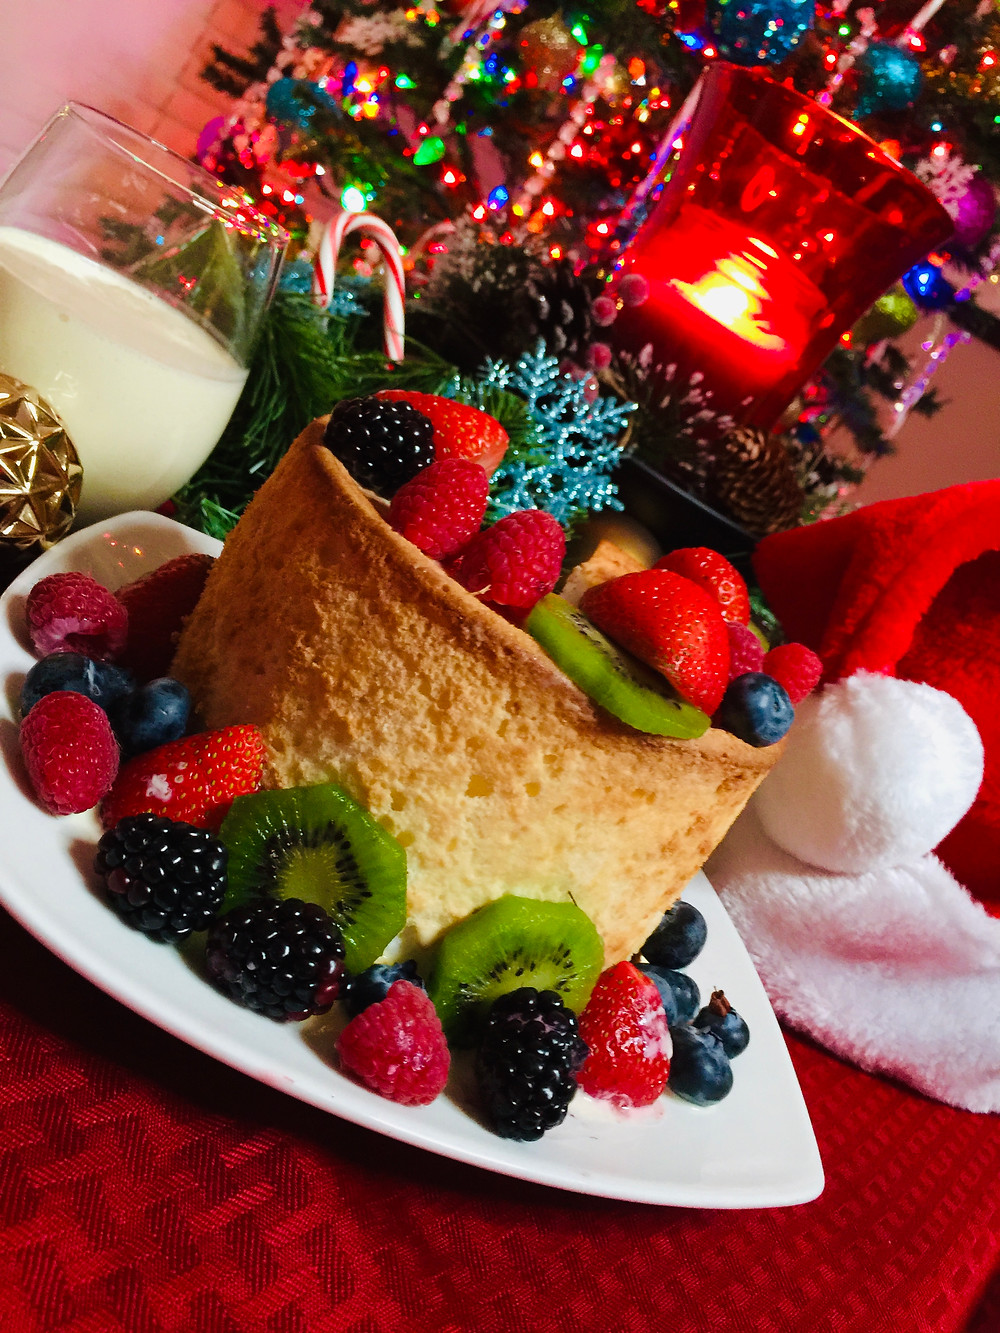 Joe's Eggnog Angel Foot Cake with Assorted Berries